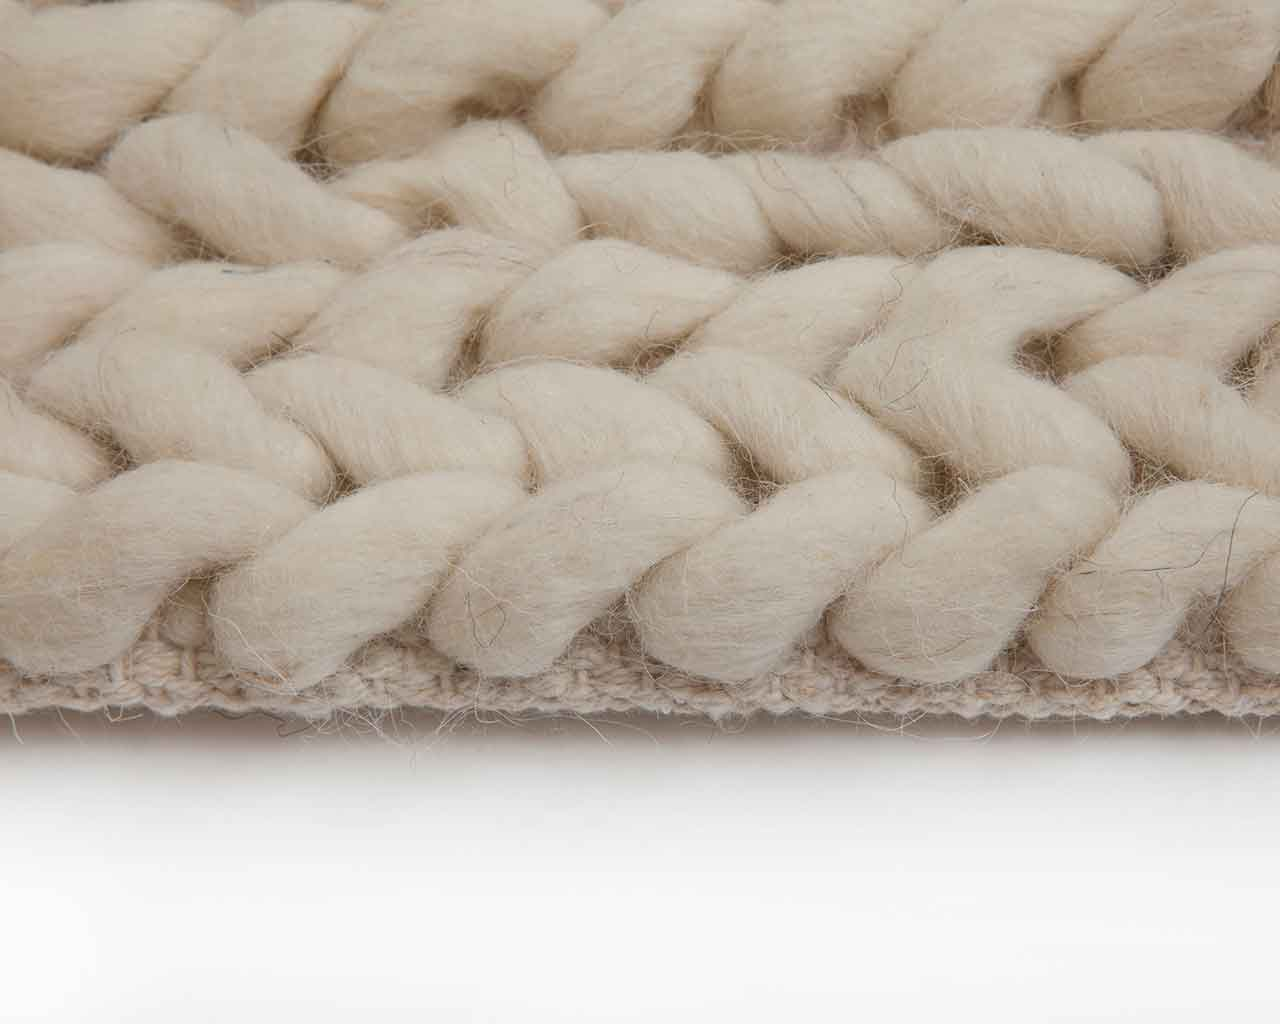 white braided wool carpet designer 1